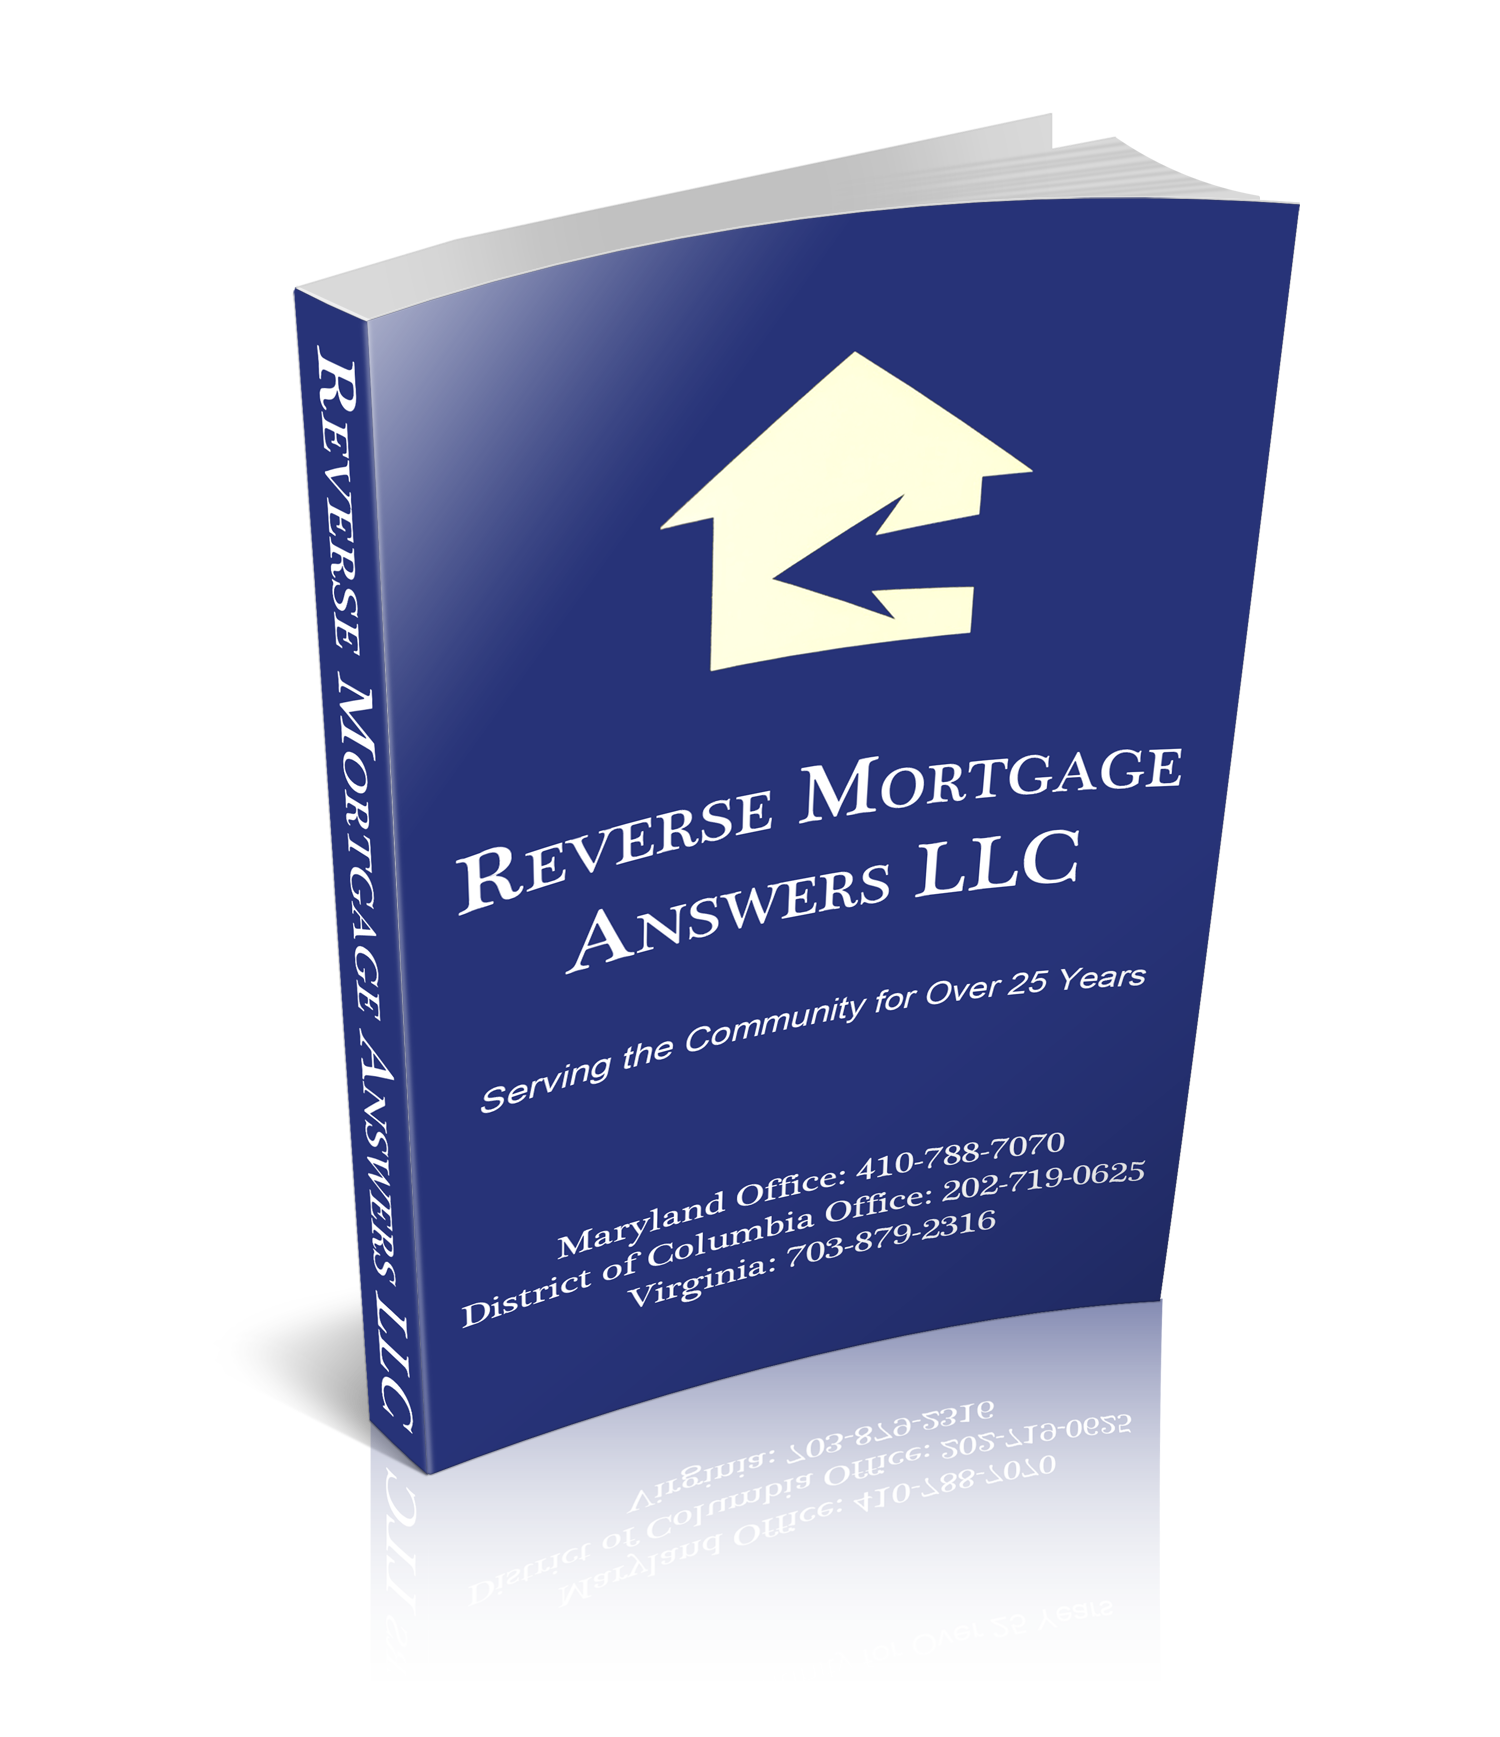 Free Reverse Mortgage Guide  Reverse Mortgage Answers. Plastic Surgical Associates Fl Corp Search. Corporate Finance Magazine Waveguide To Coax. How To Apply For Auto Loan What I S Security. Database App For Android Measure For Windows. Fidelity Checking Account Georgia Divorce Law. Auto Insurance Smyrna Ga Emigrant Saving Bank. Credit Card Application Online Philippines. Anthem Bcbs California Phone Number